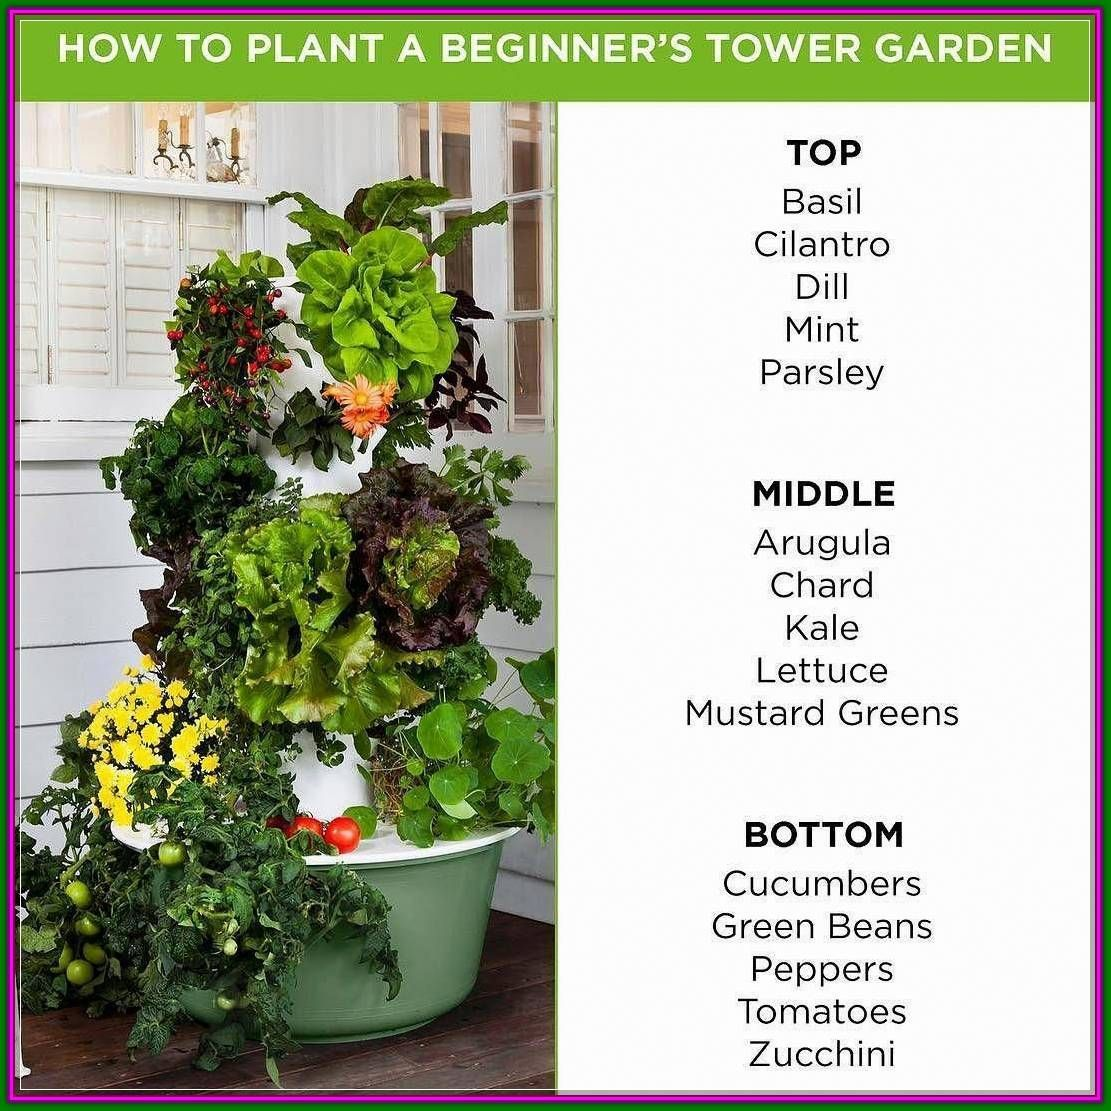 Indoor Garden For Beginners Create A Focal Point In Your Garden With A Unique Plant More Tips Can Be Found By Cl In 2020 Juice Plus Tower Garden Tower Garden Plants